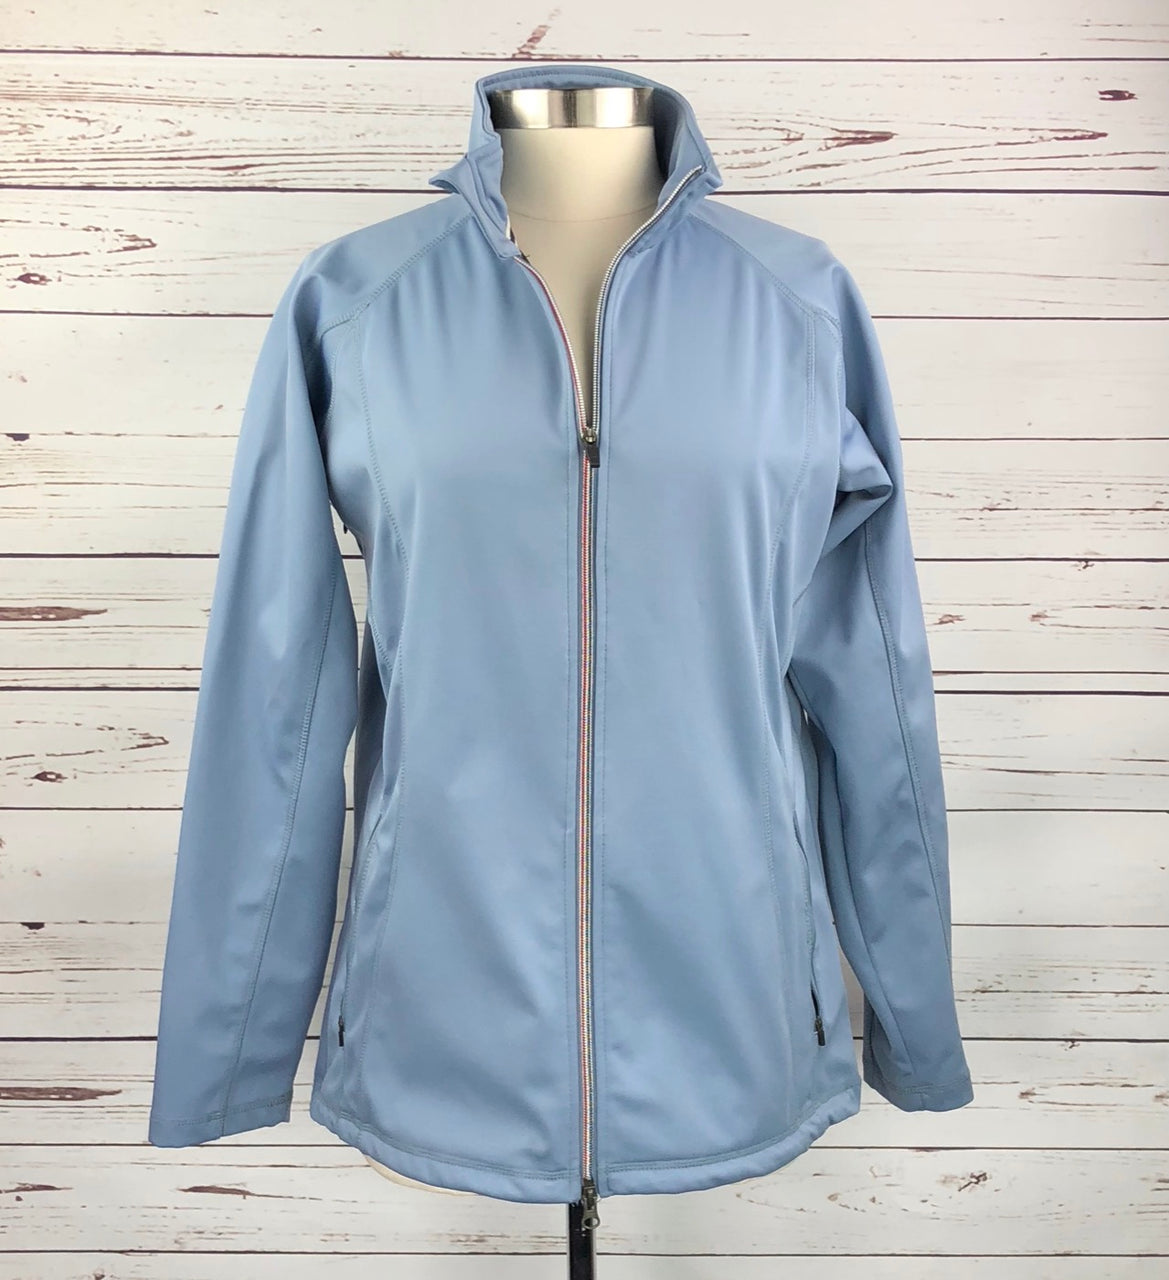 Kingsland Hillsport Softshell Jacket in Light Blue - Women's XL